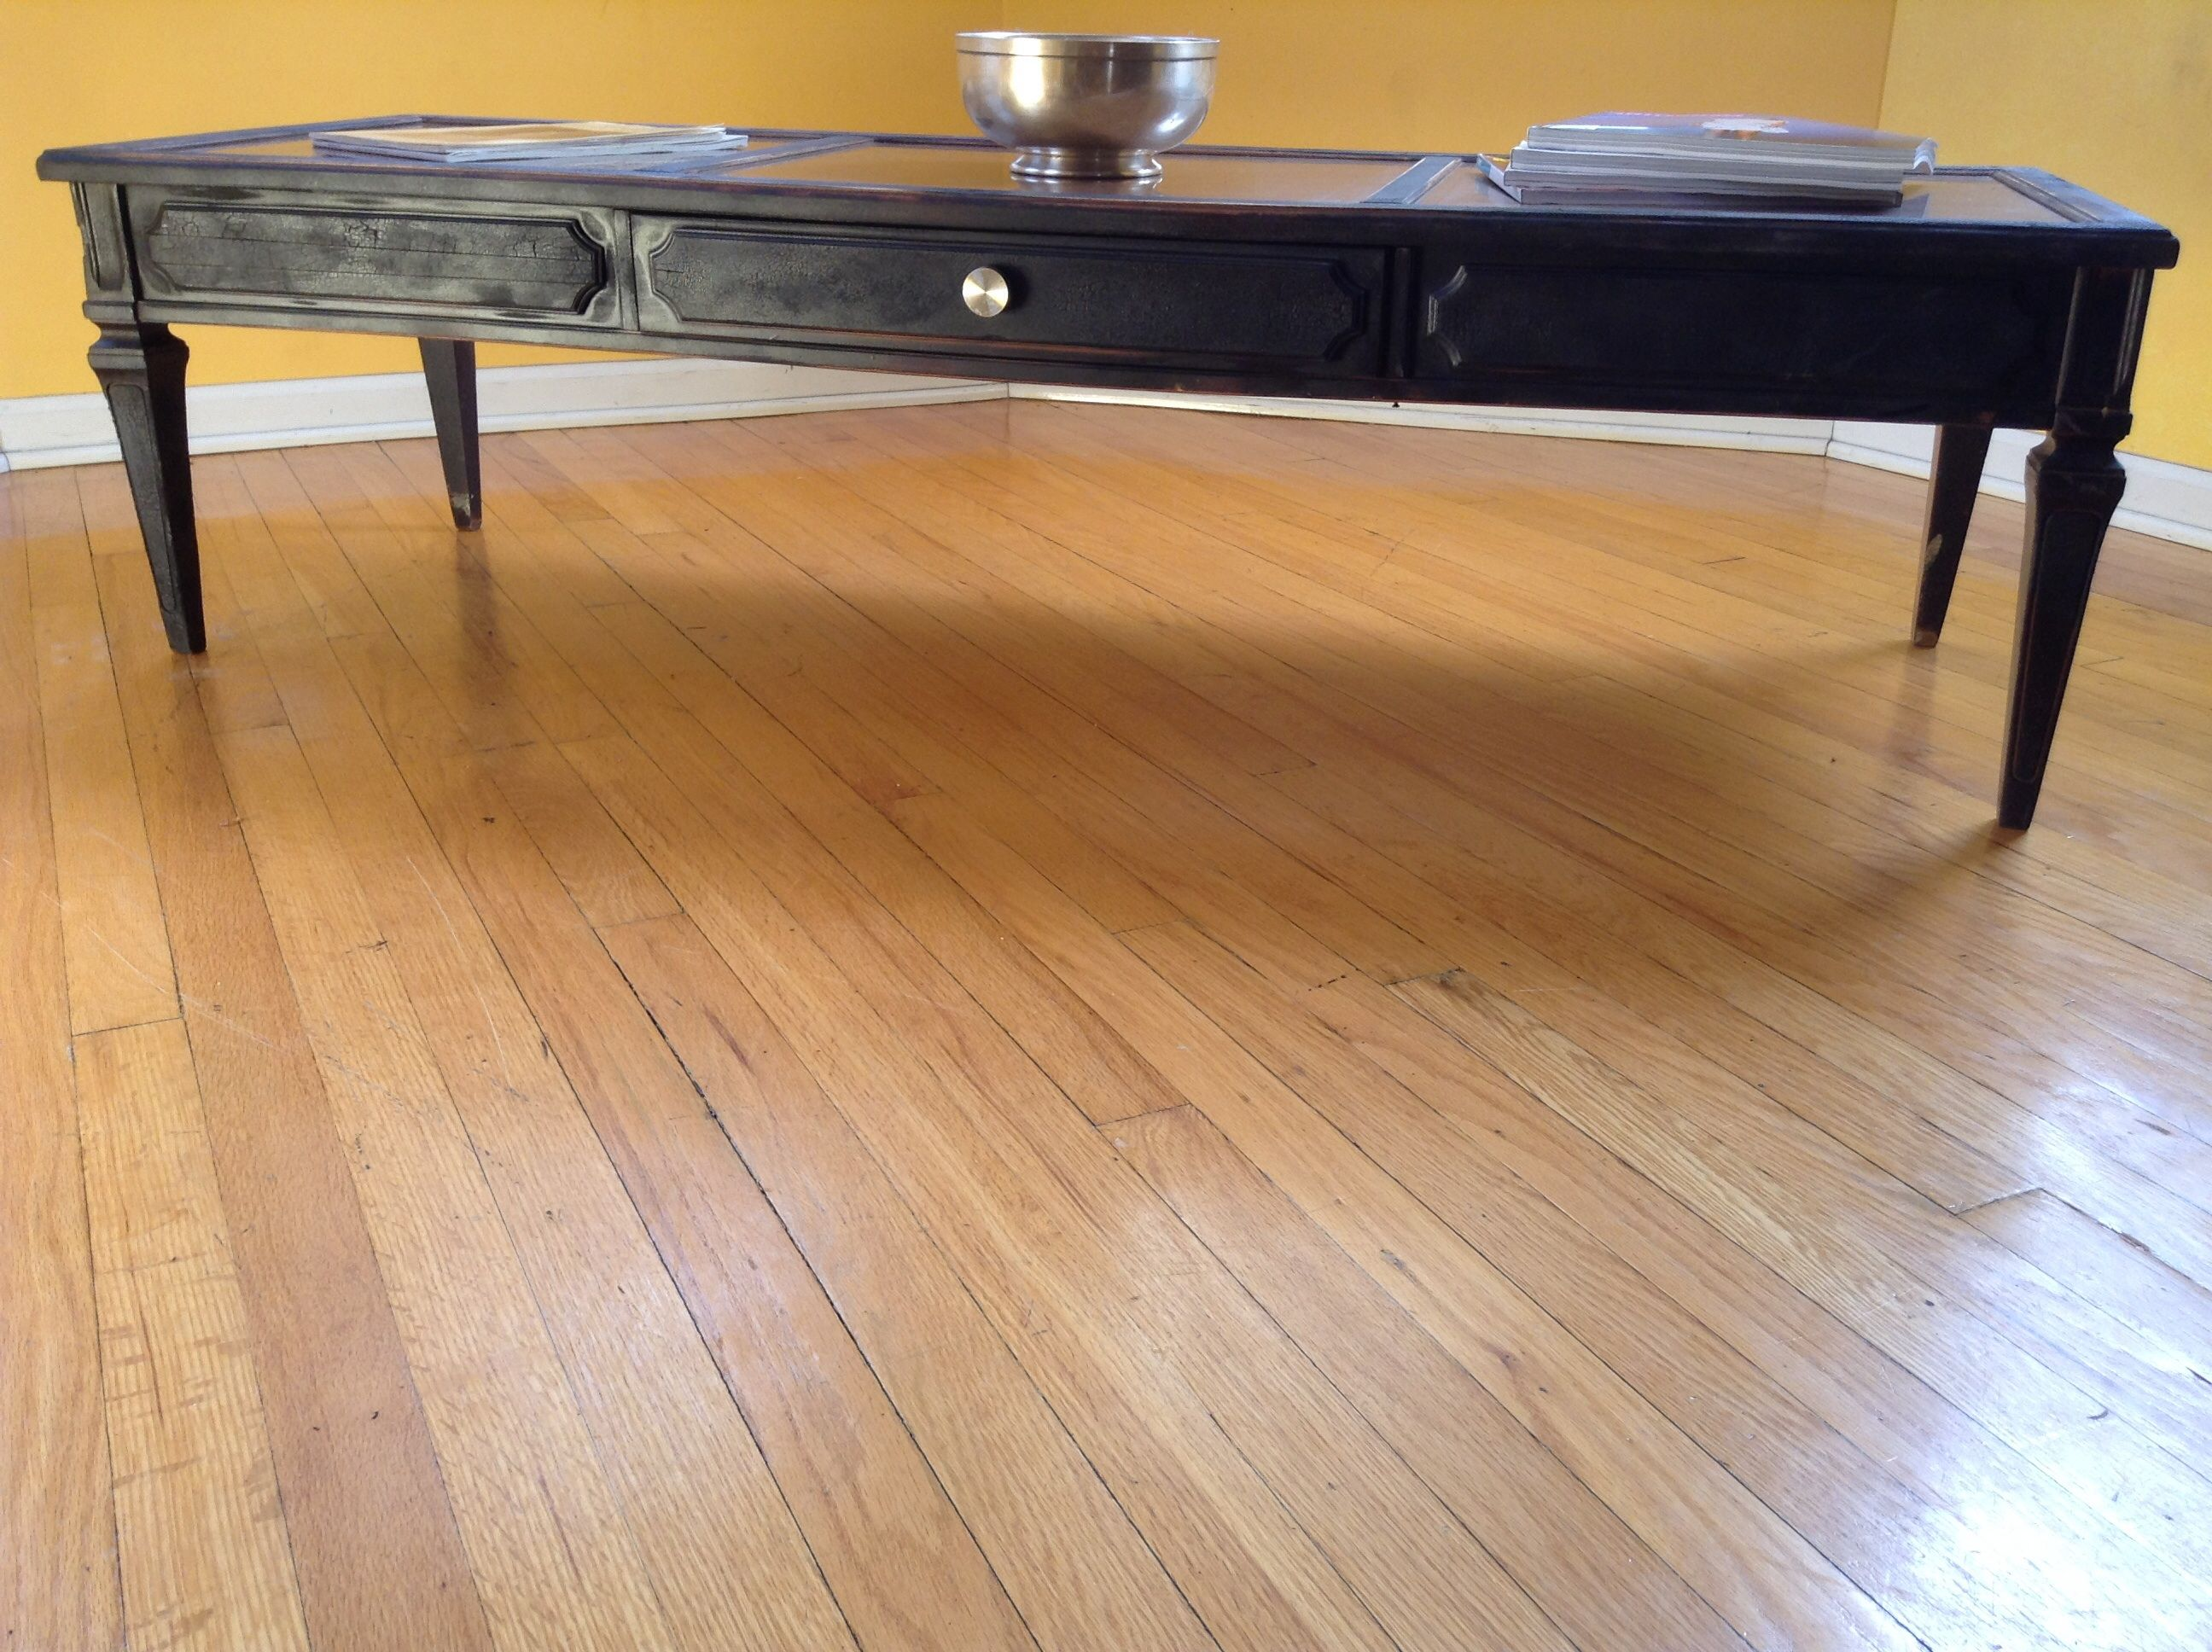 Torched Maple Coffee Table with new chrome